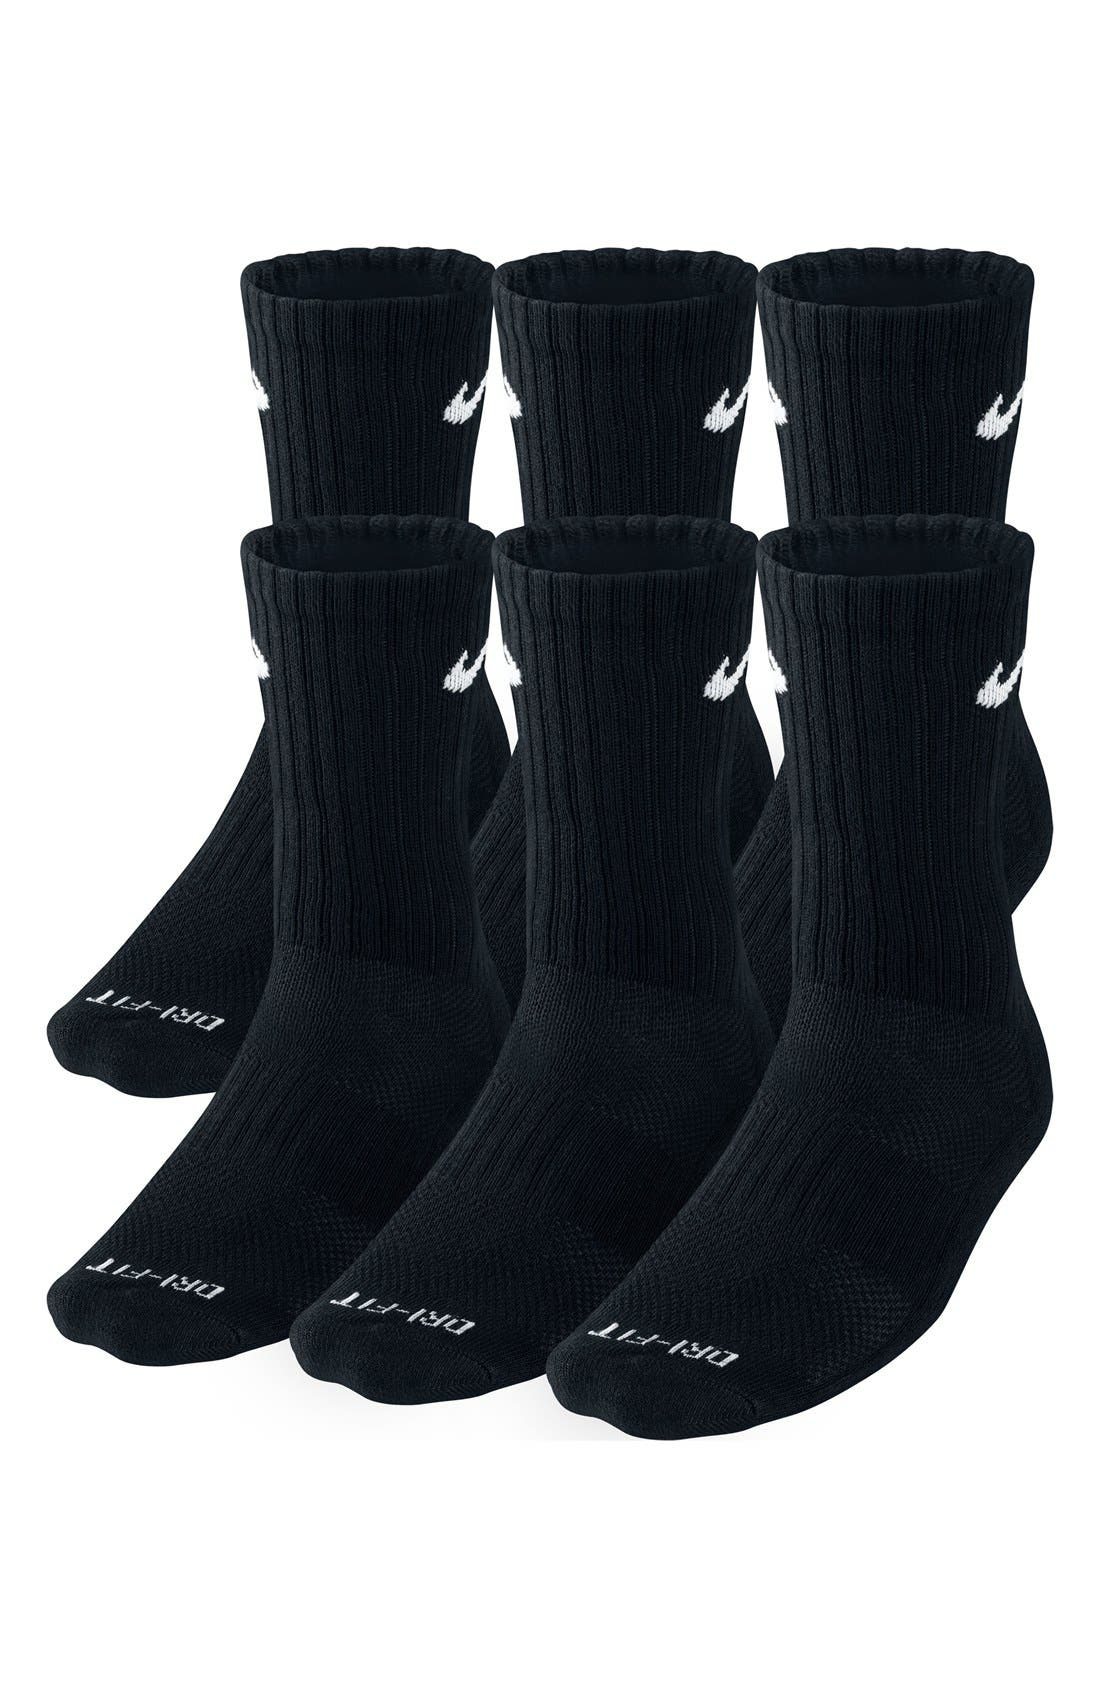 Nike Dri-FIT Crew Socks (6-Pack) (Men)